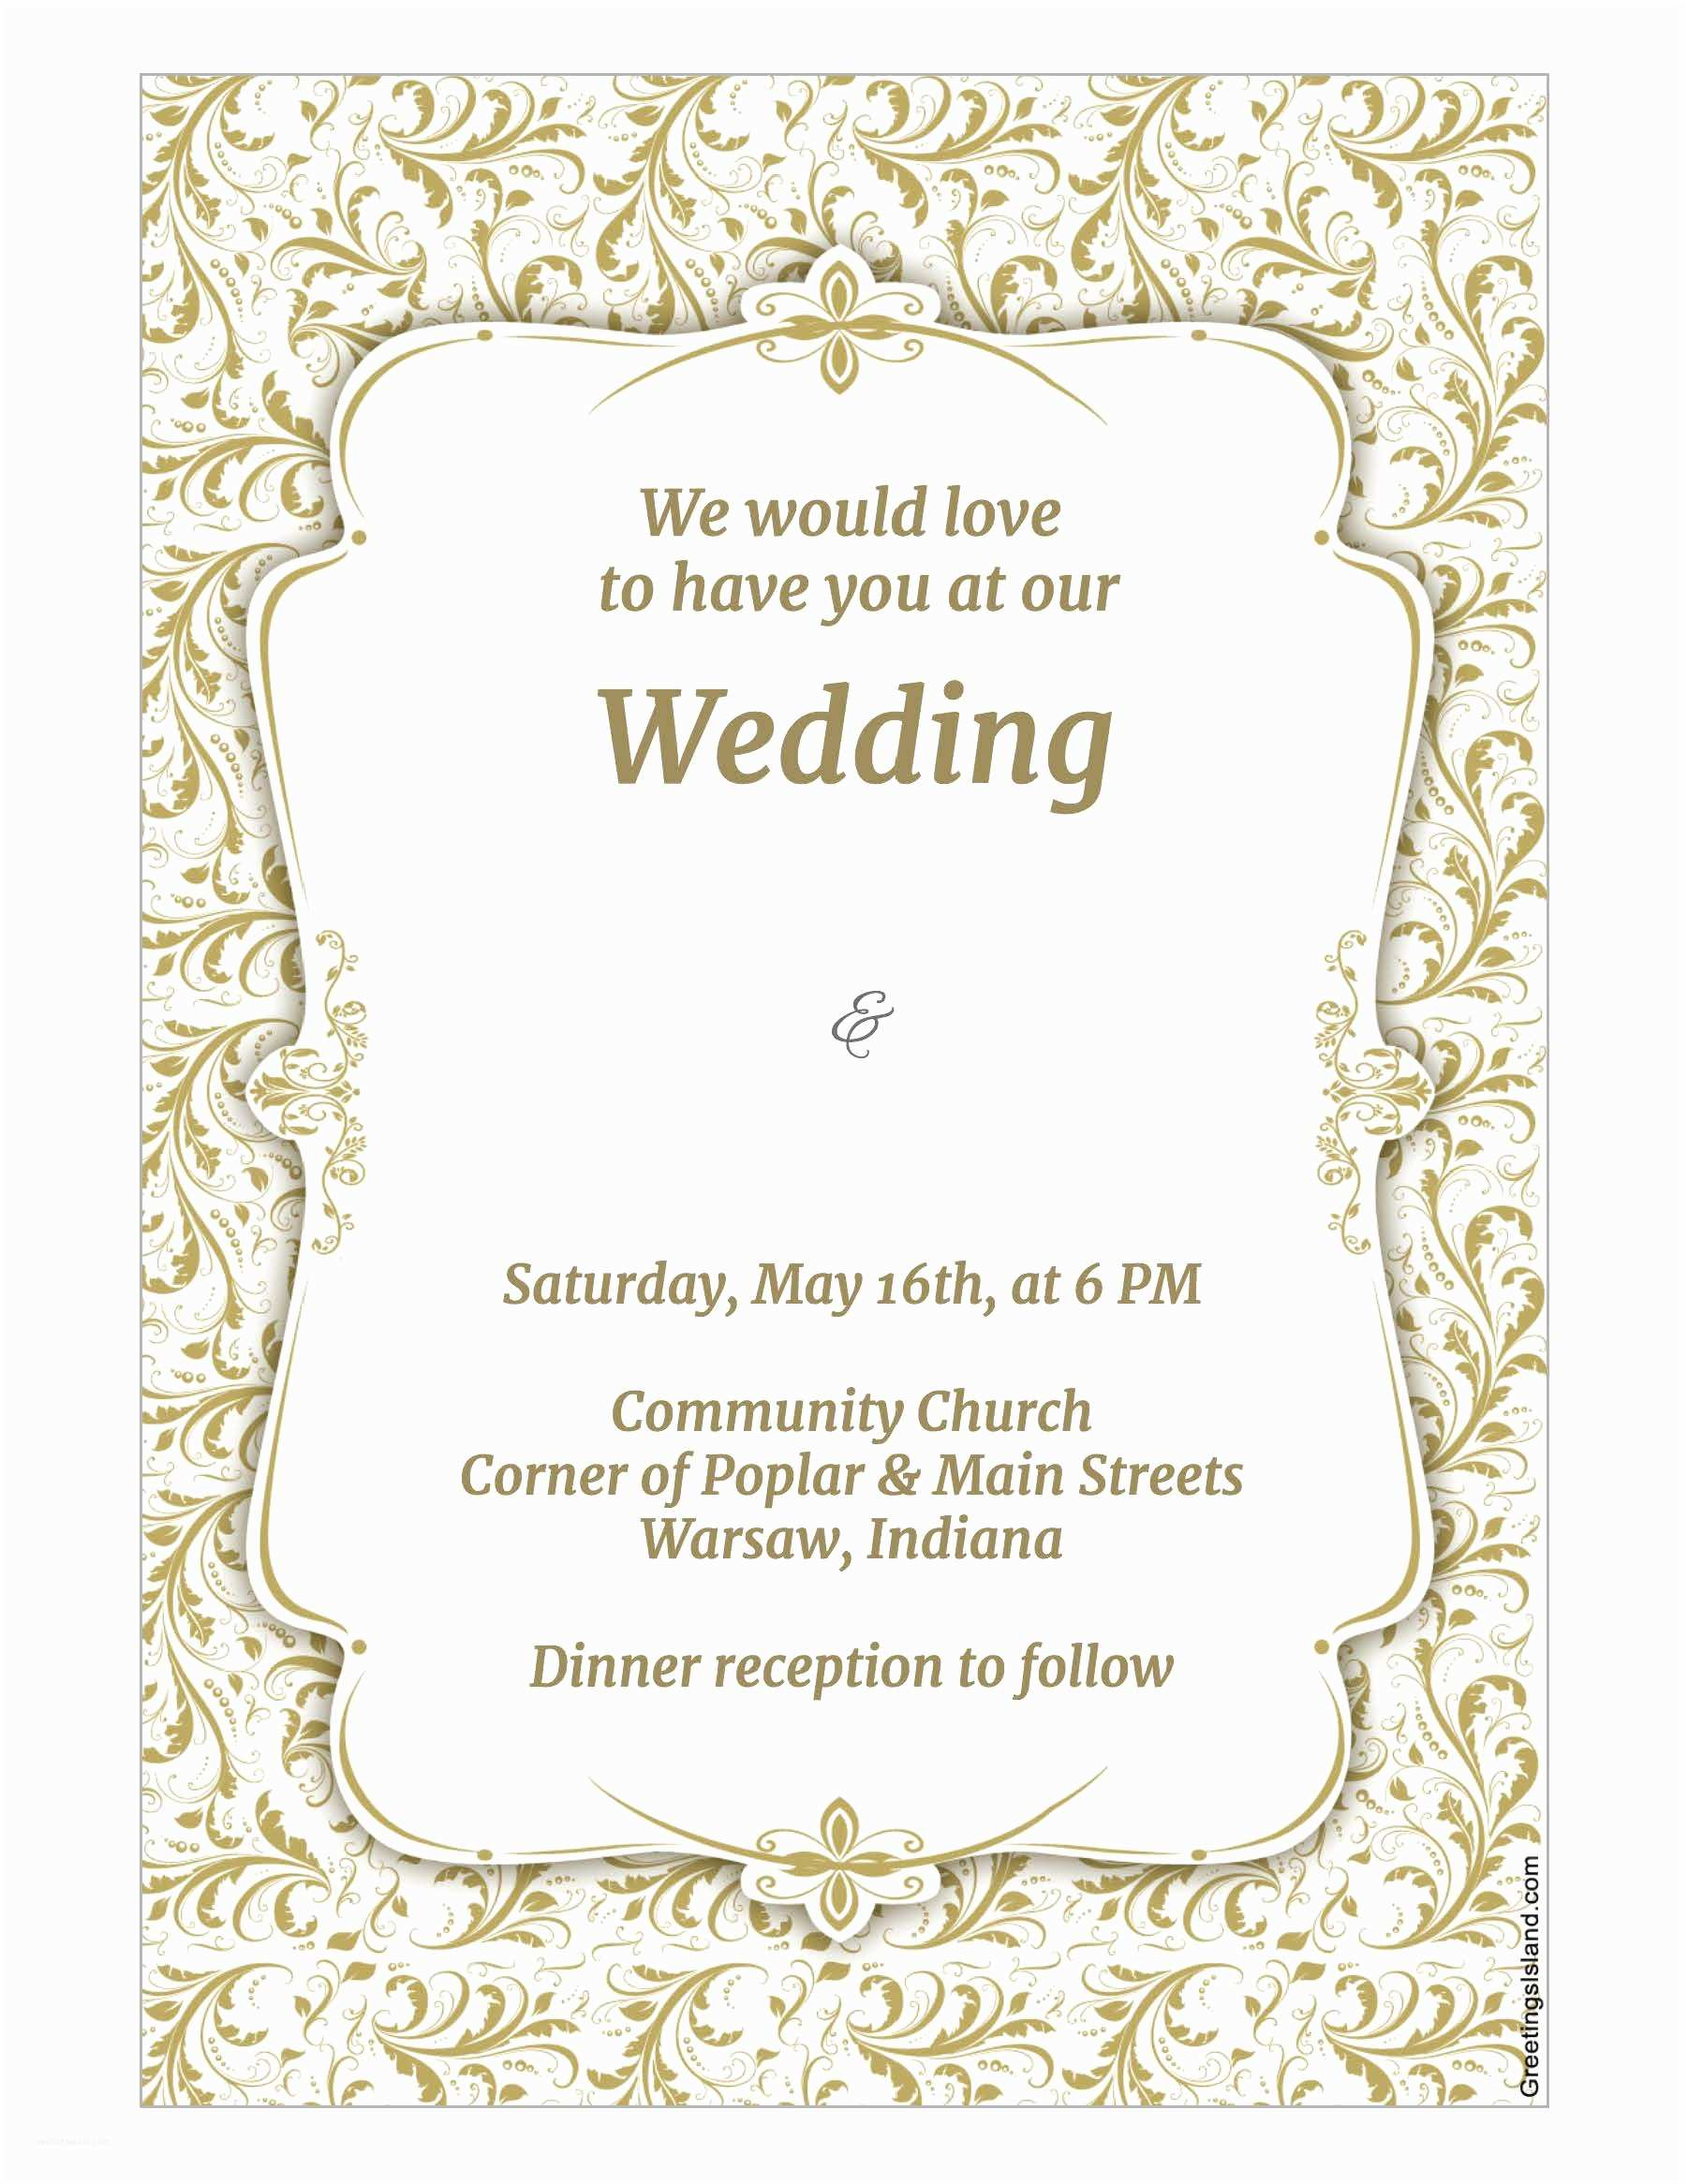 Wedding Invitation with Photo Templates Download Wedding Invitation Template Wikidownload